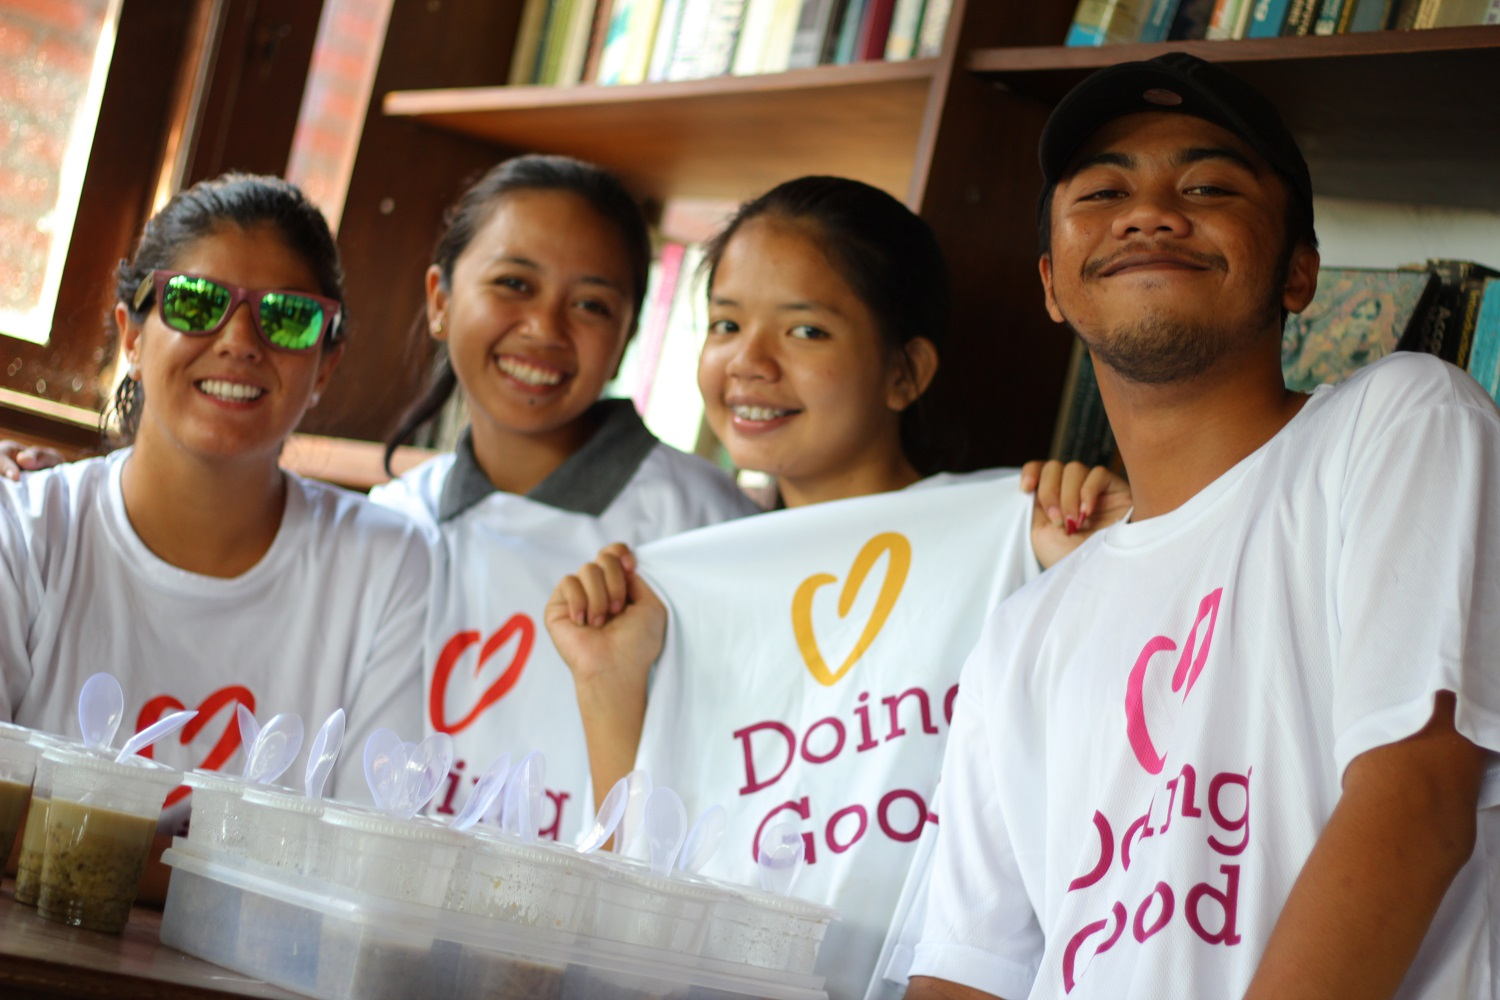 Yayasan Slukat Learning Center volunteers handing out food for Good Deeds Day.